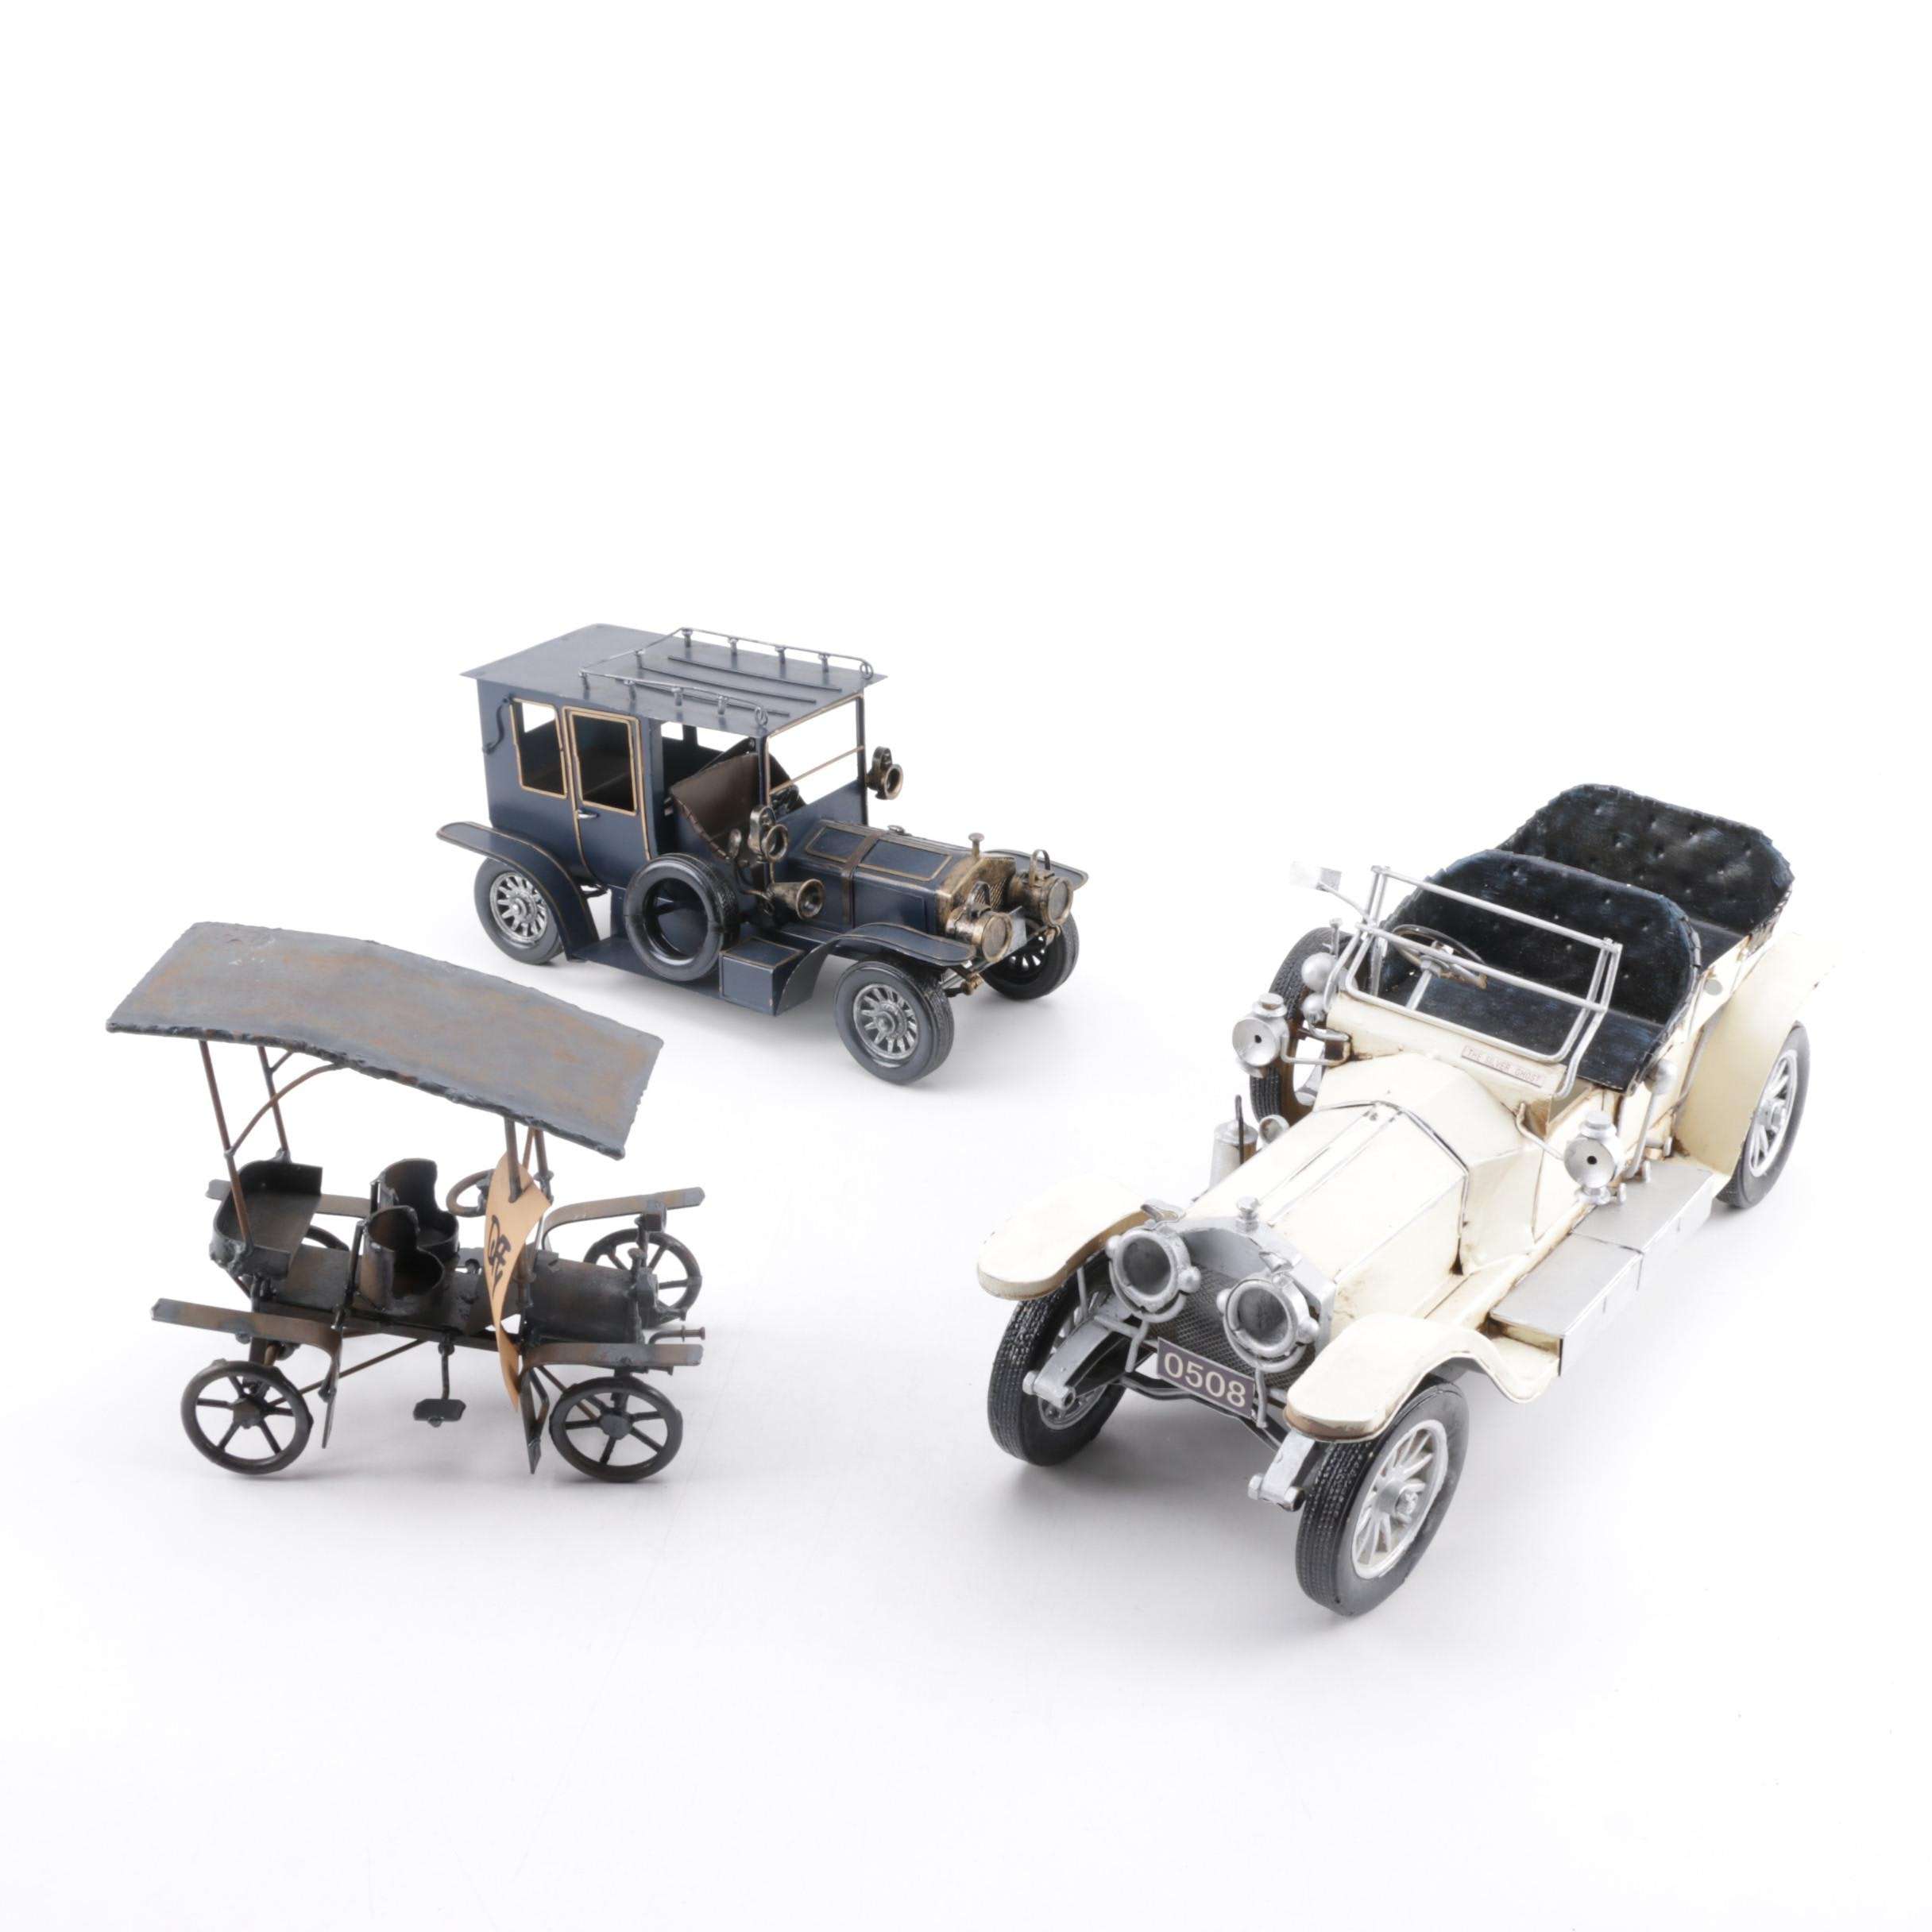 Signed John Duffy Automobile Sculpture and Other Replica Automobiles